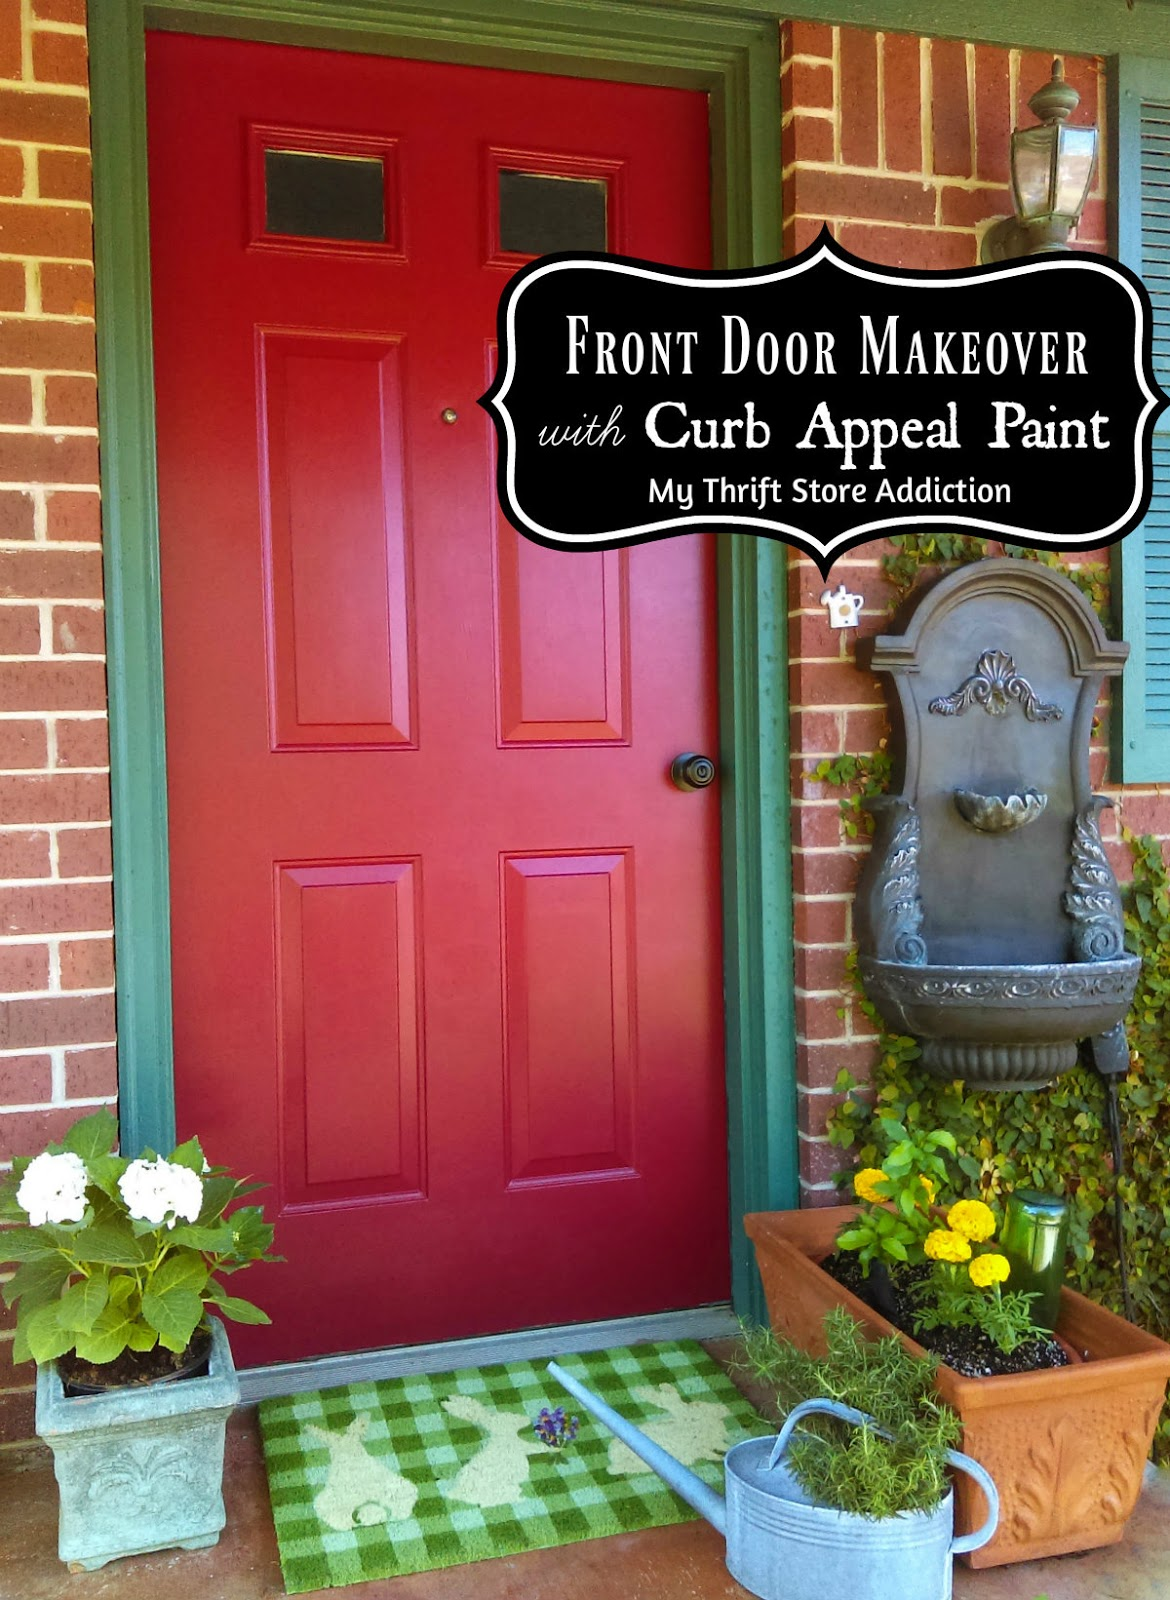 Curb Appeal paint front door makeover